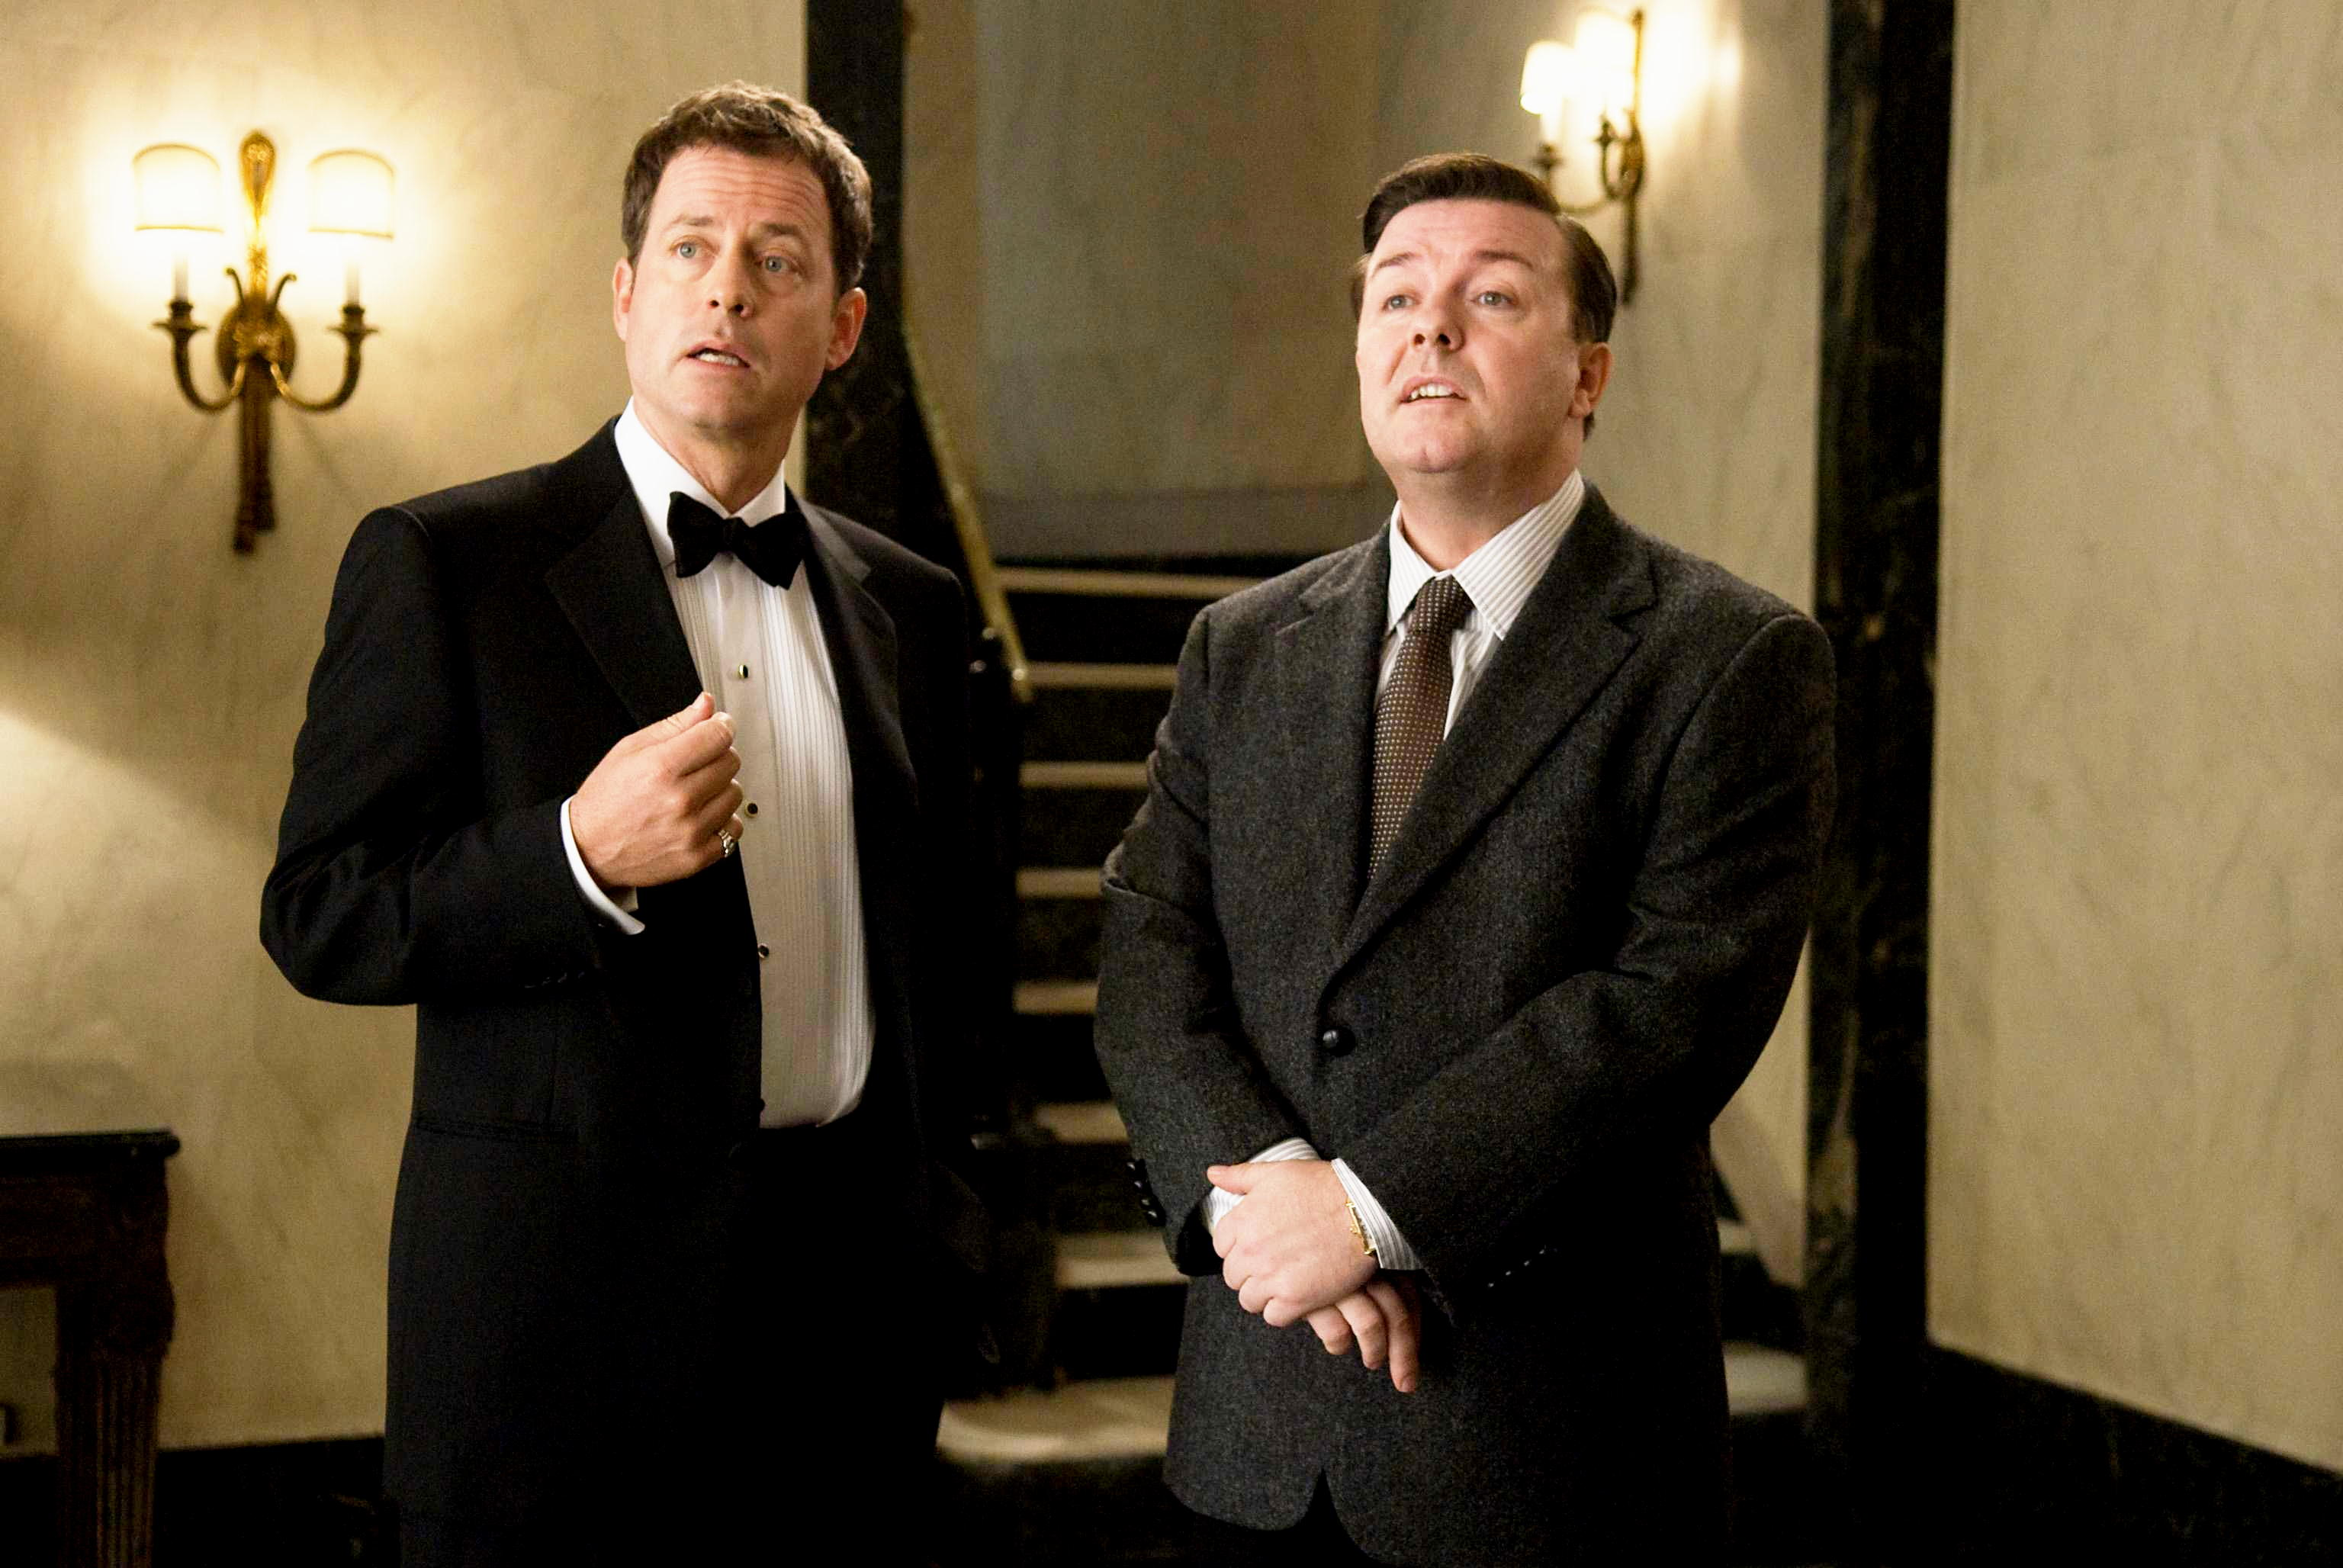 Greg Kinnear stars as Frank Herlihy and Ricky Gervais stars as Bertram Pincus in Paramount Pictures' Ghost Town (2008)